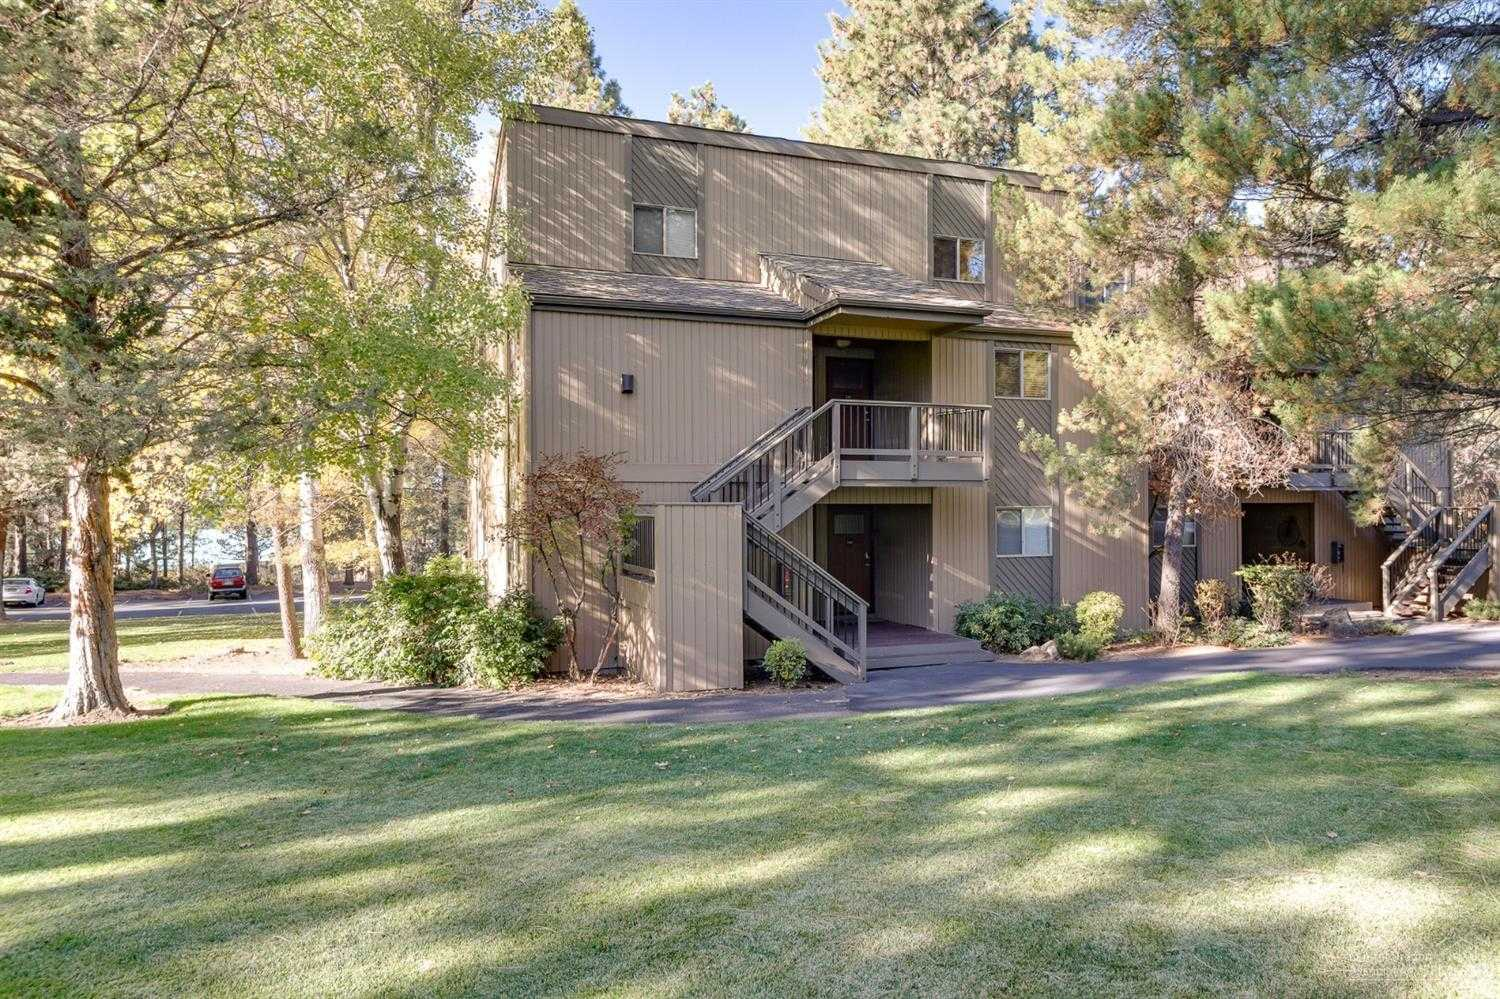 $295,000 - 2Br/1Ba -  for Sale in Bend